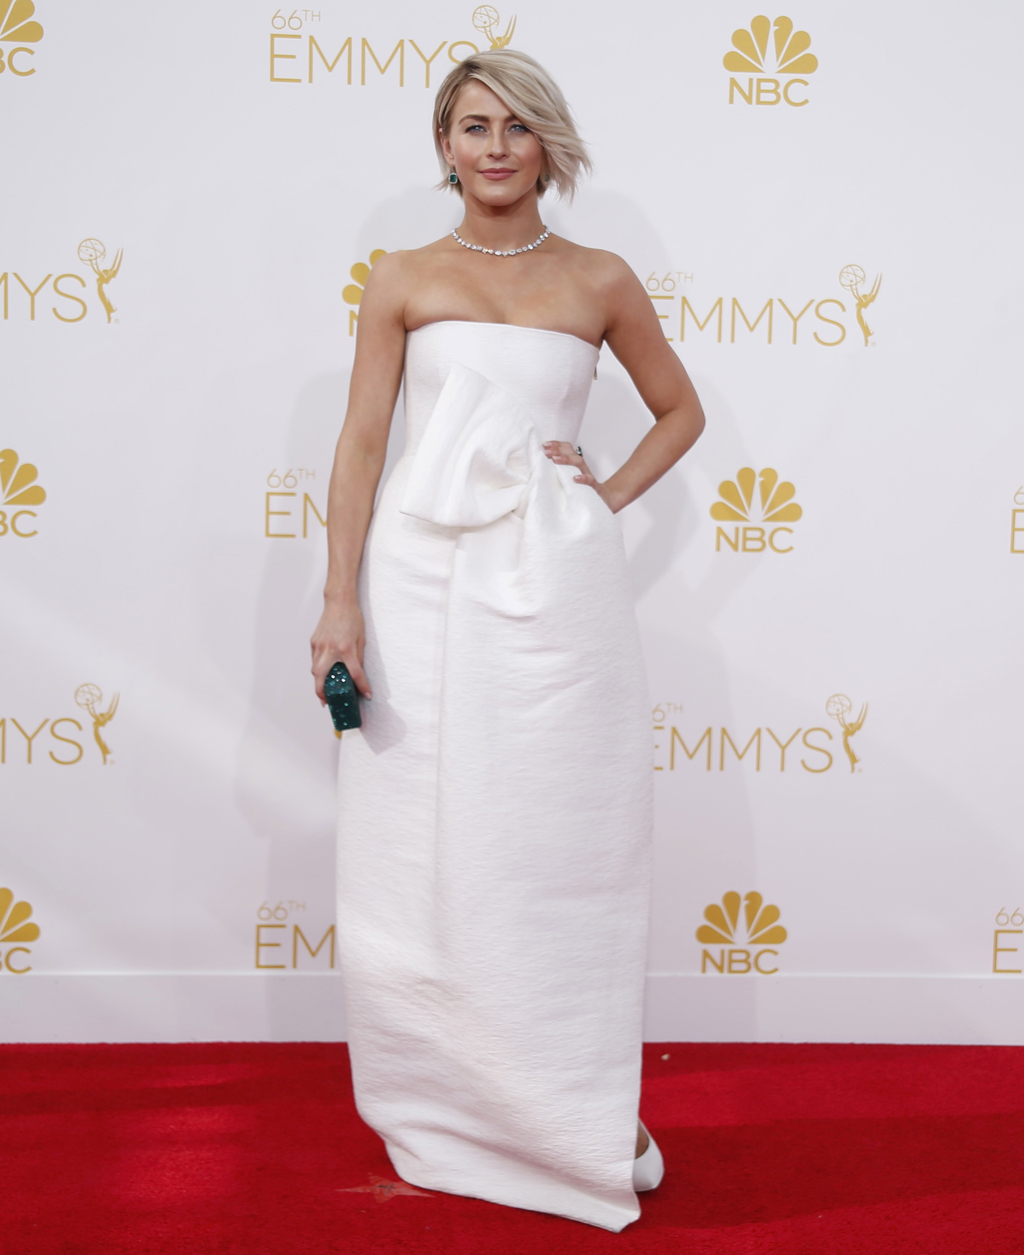 Julianne Hough arrives at the 66th Primetime Emmy Awards in Los Angeles